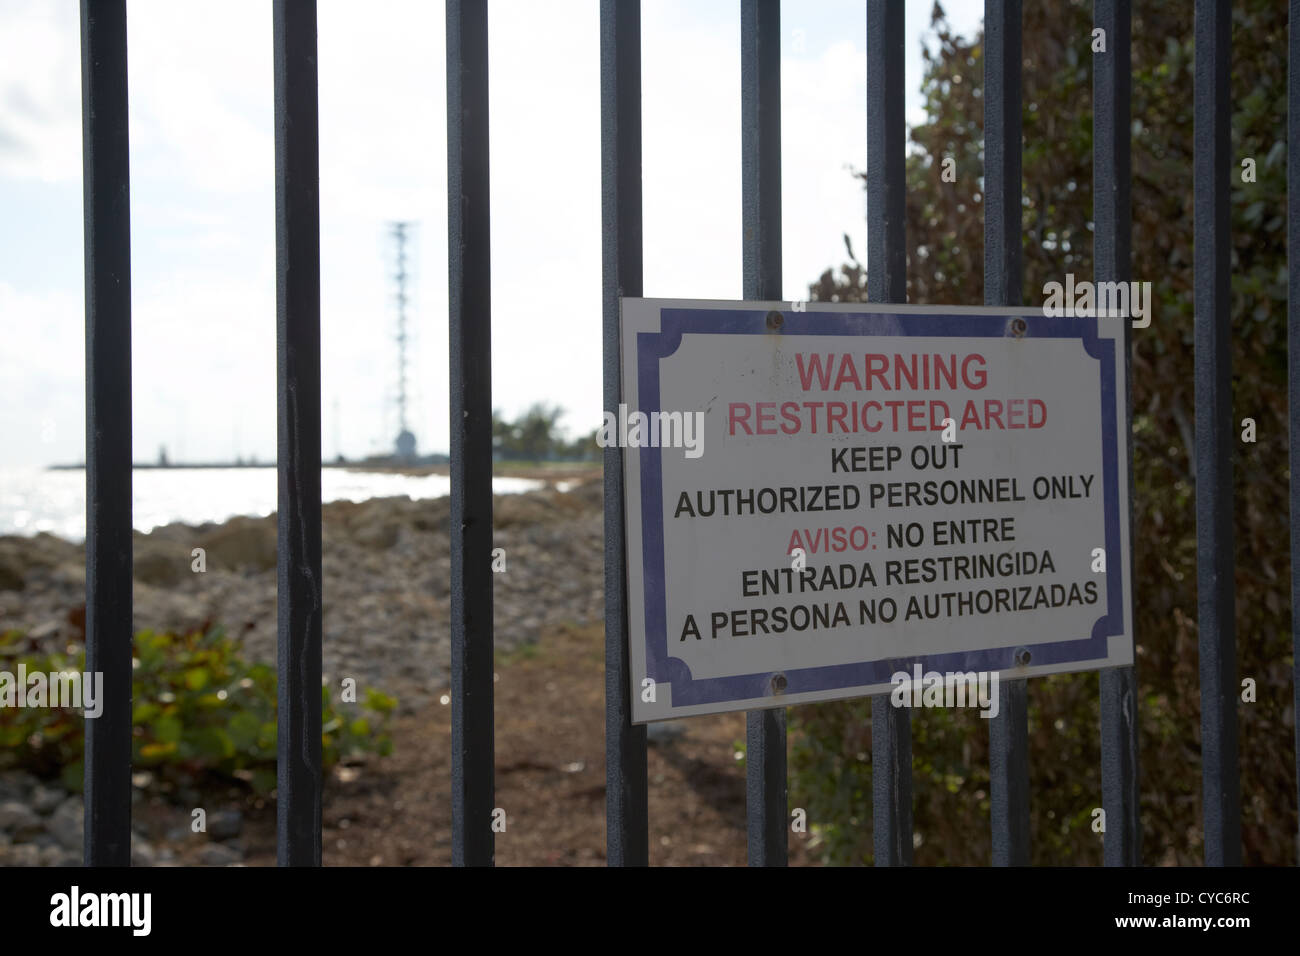 bilingual warning restricted area authorized personnel only us government land fence usa - Stock Image